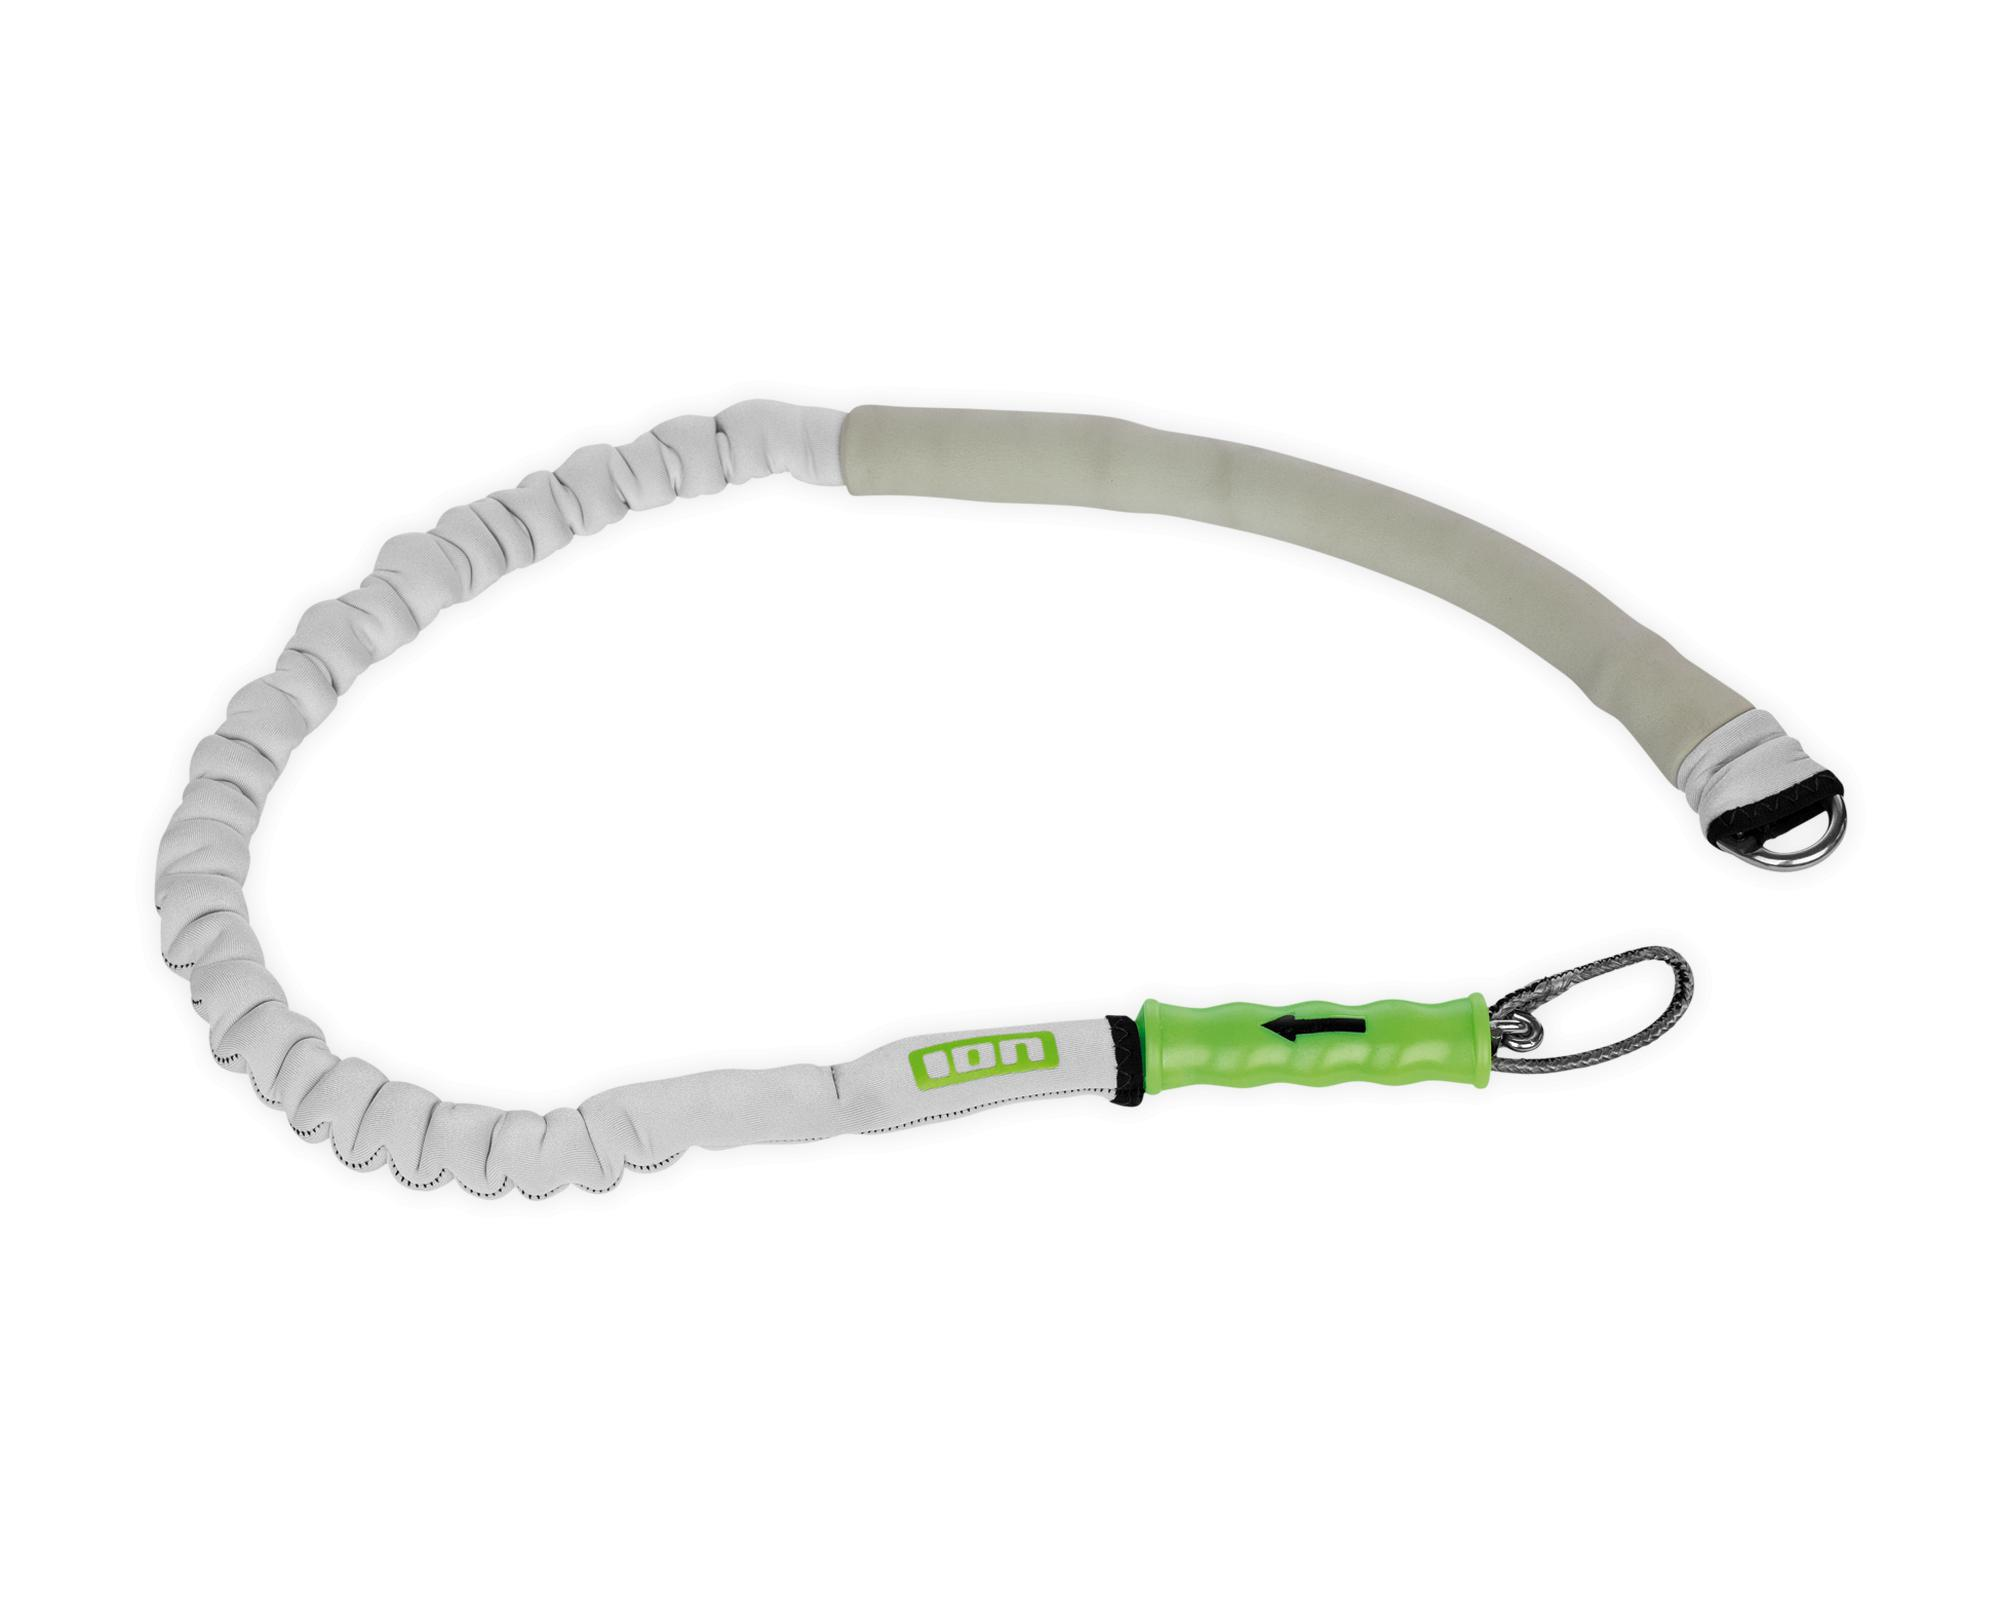 ION Products - Handlepass Leash 2015